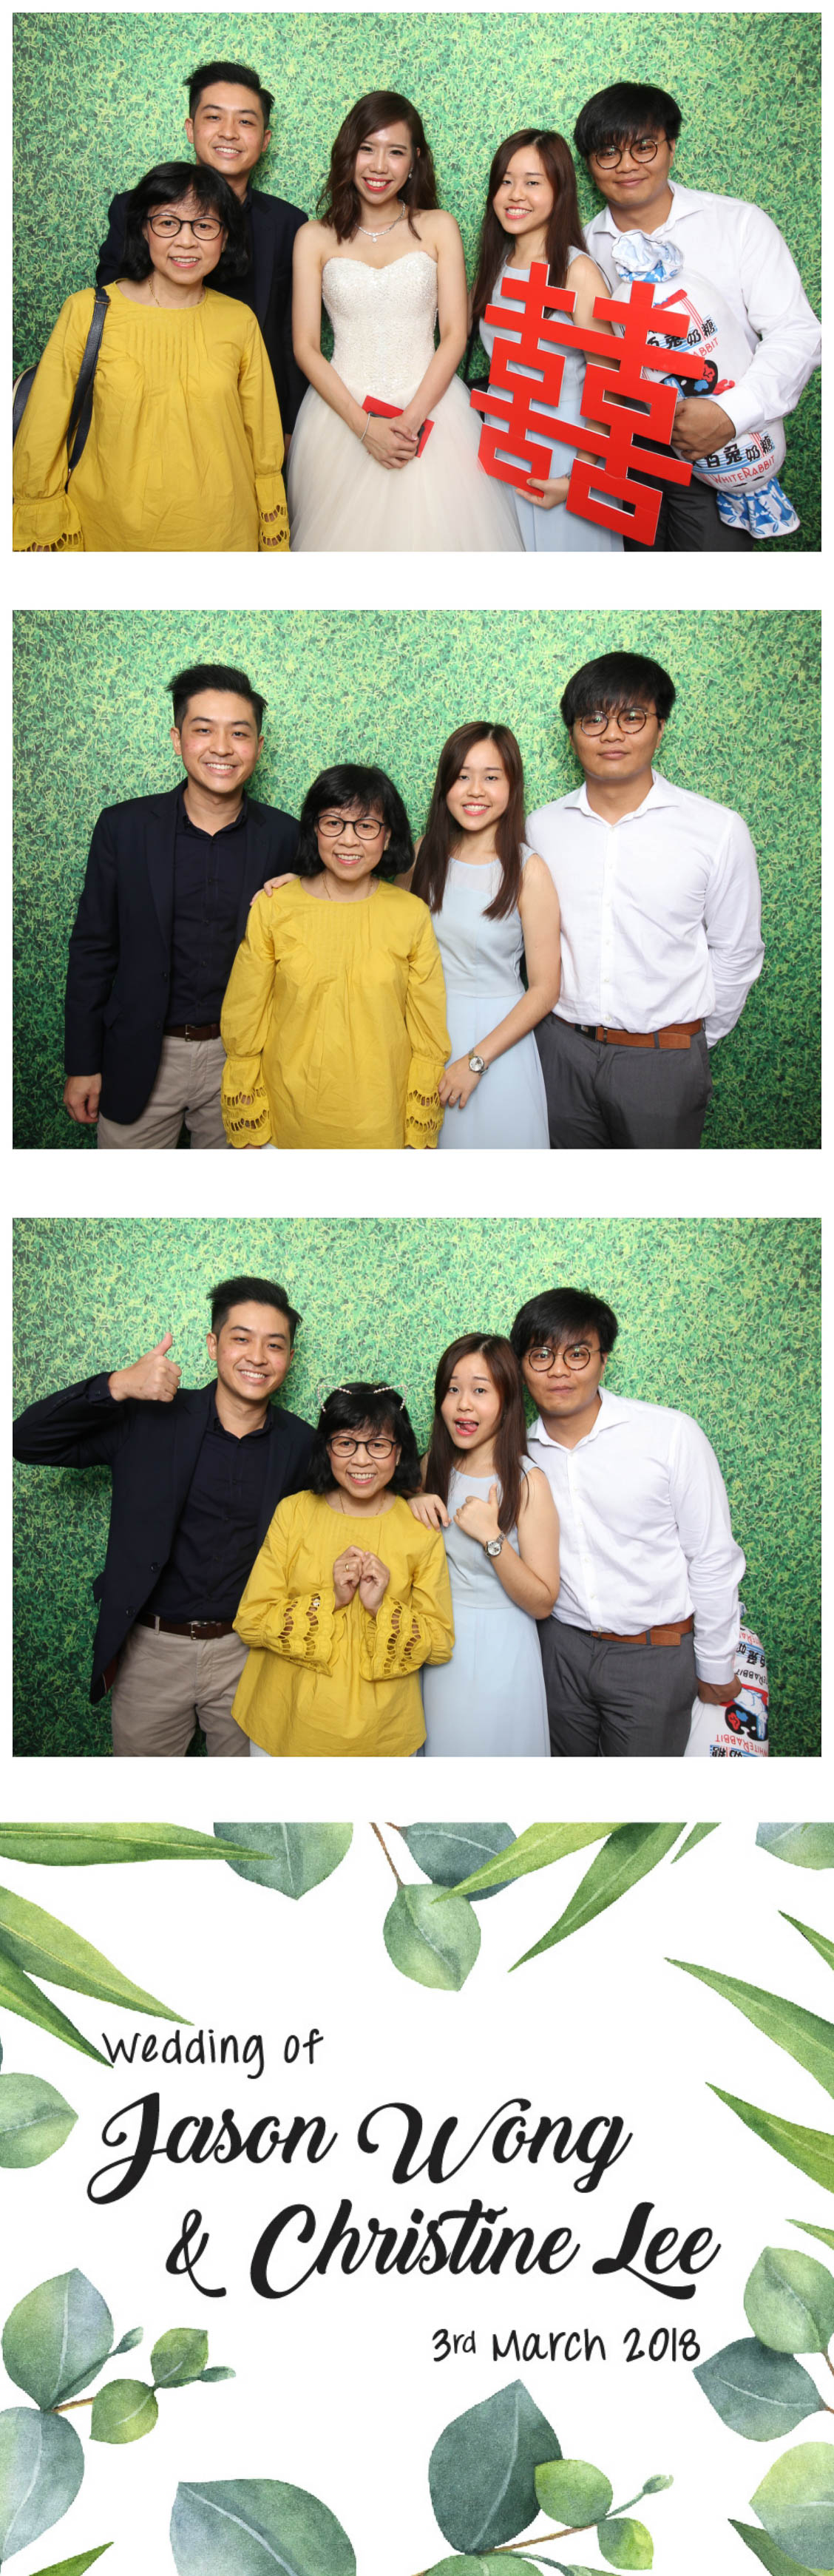 Photobooth 0302-11